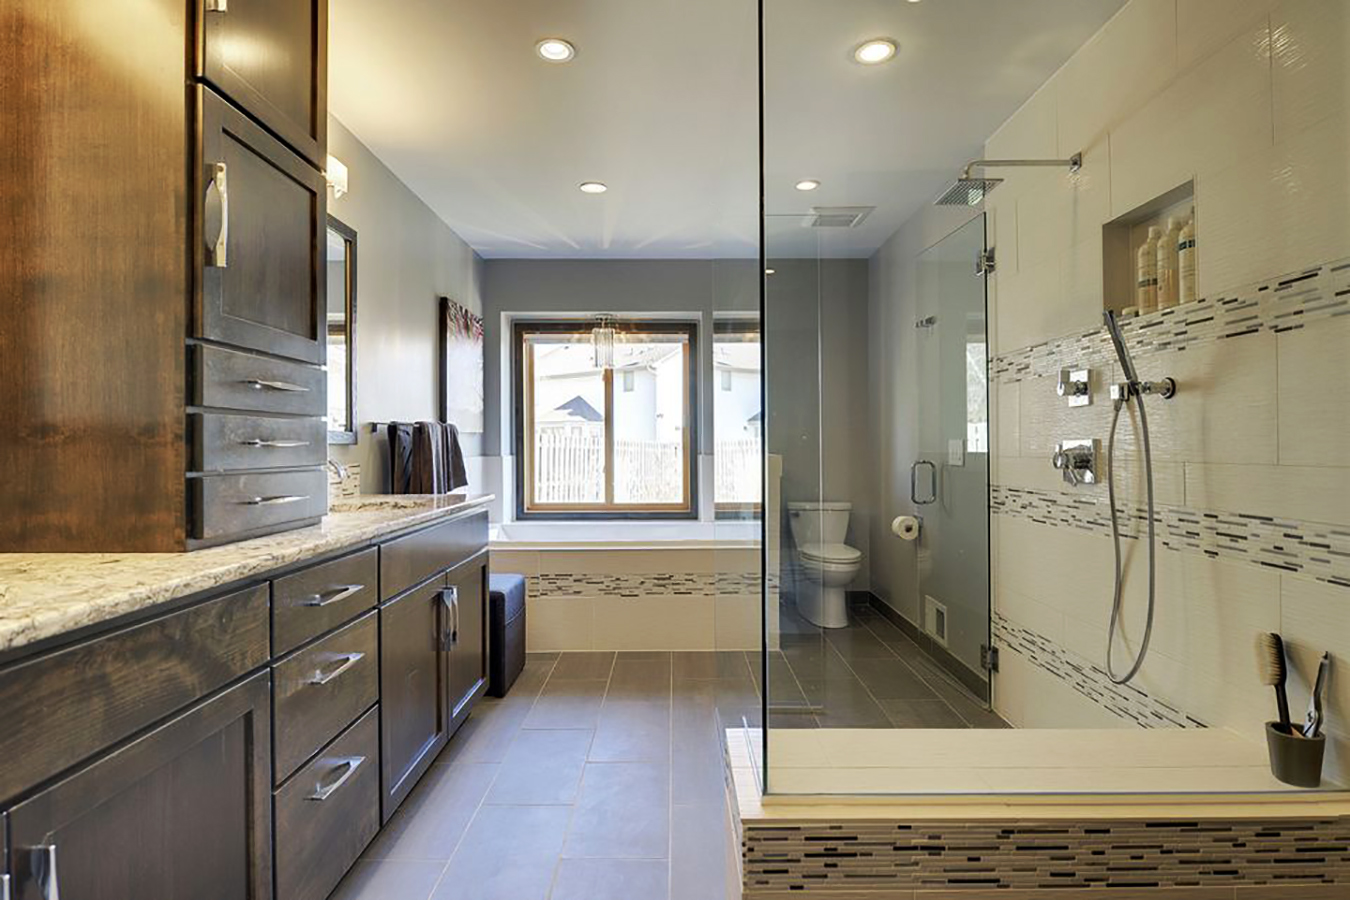 Bathroom Remodel Photo Gallery bathroom remodeling gallery | lake to lake construction